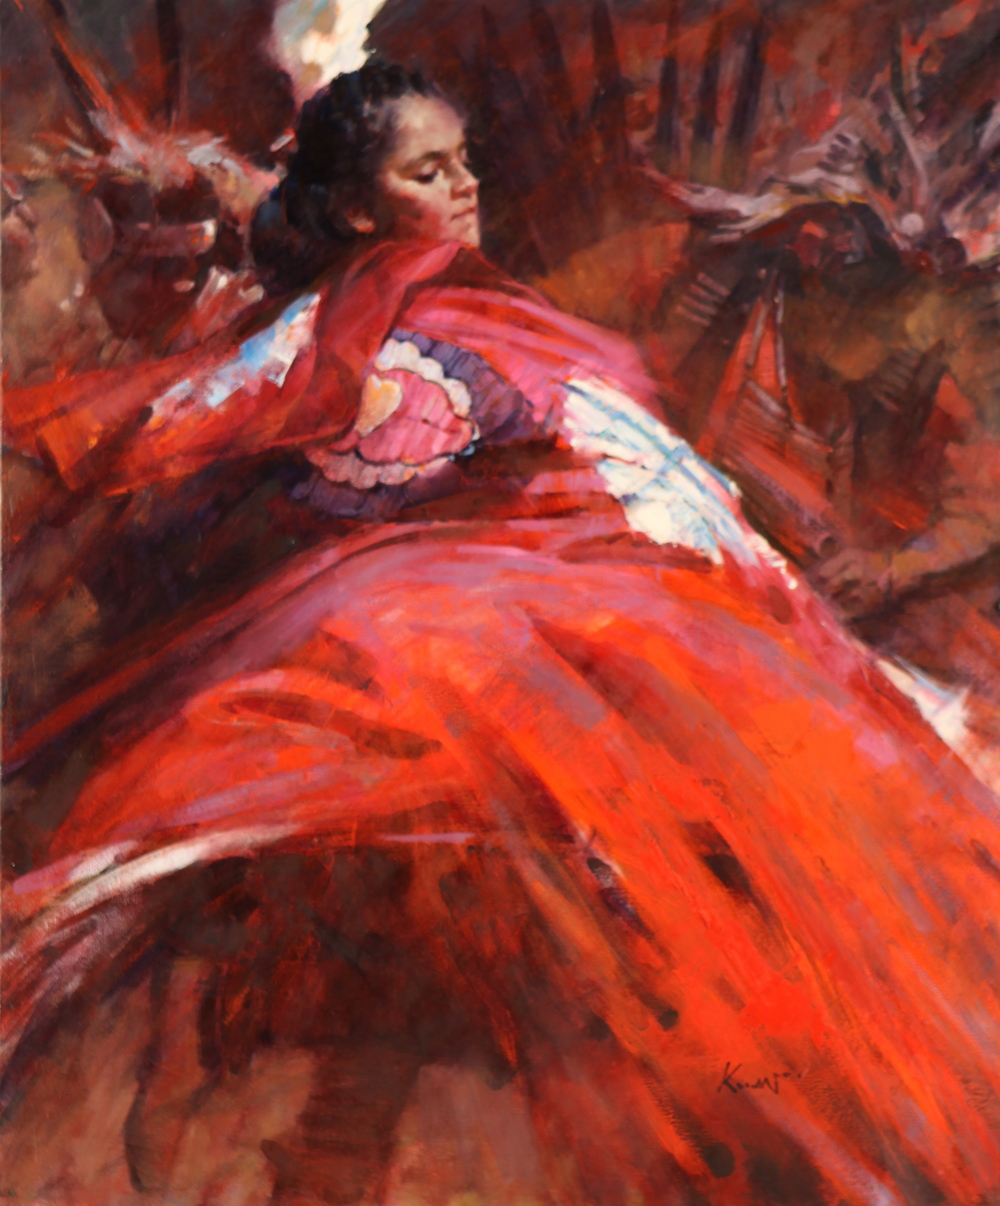 Red Cape, 2009, Victoria, B.C. Oil on Canvas, 24 x 20 inches.